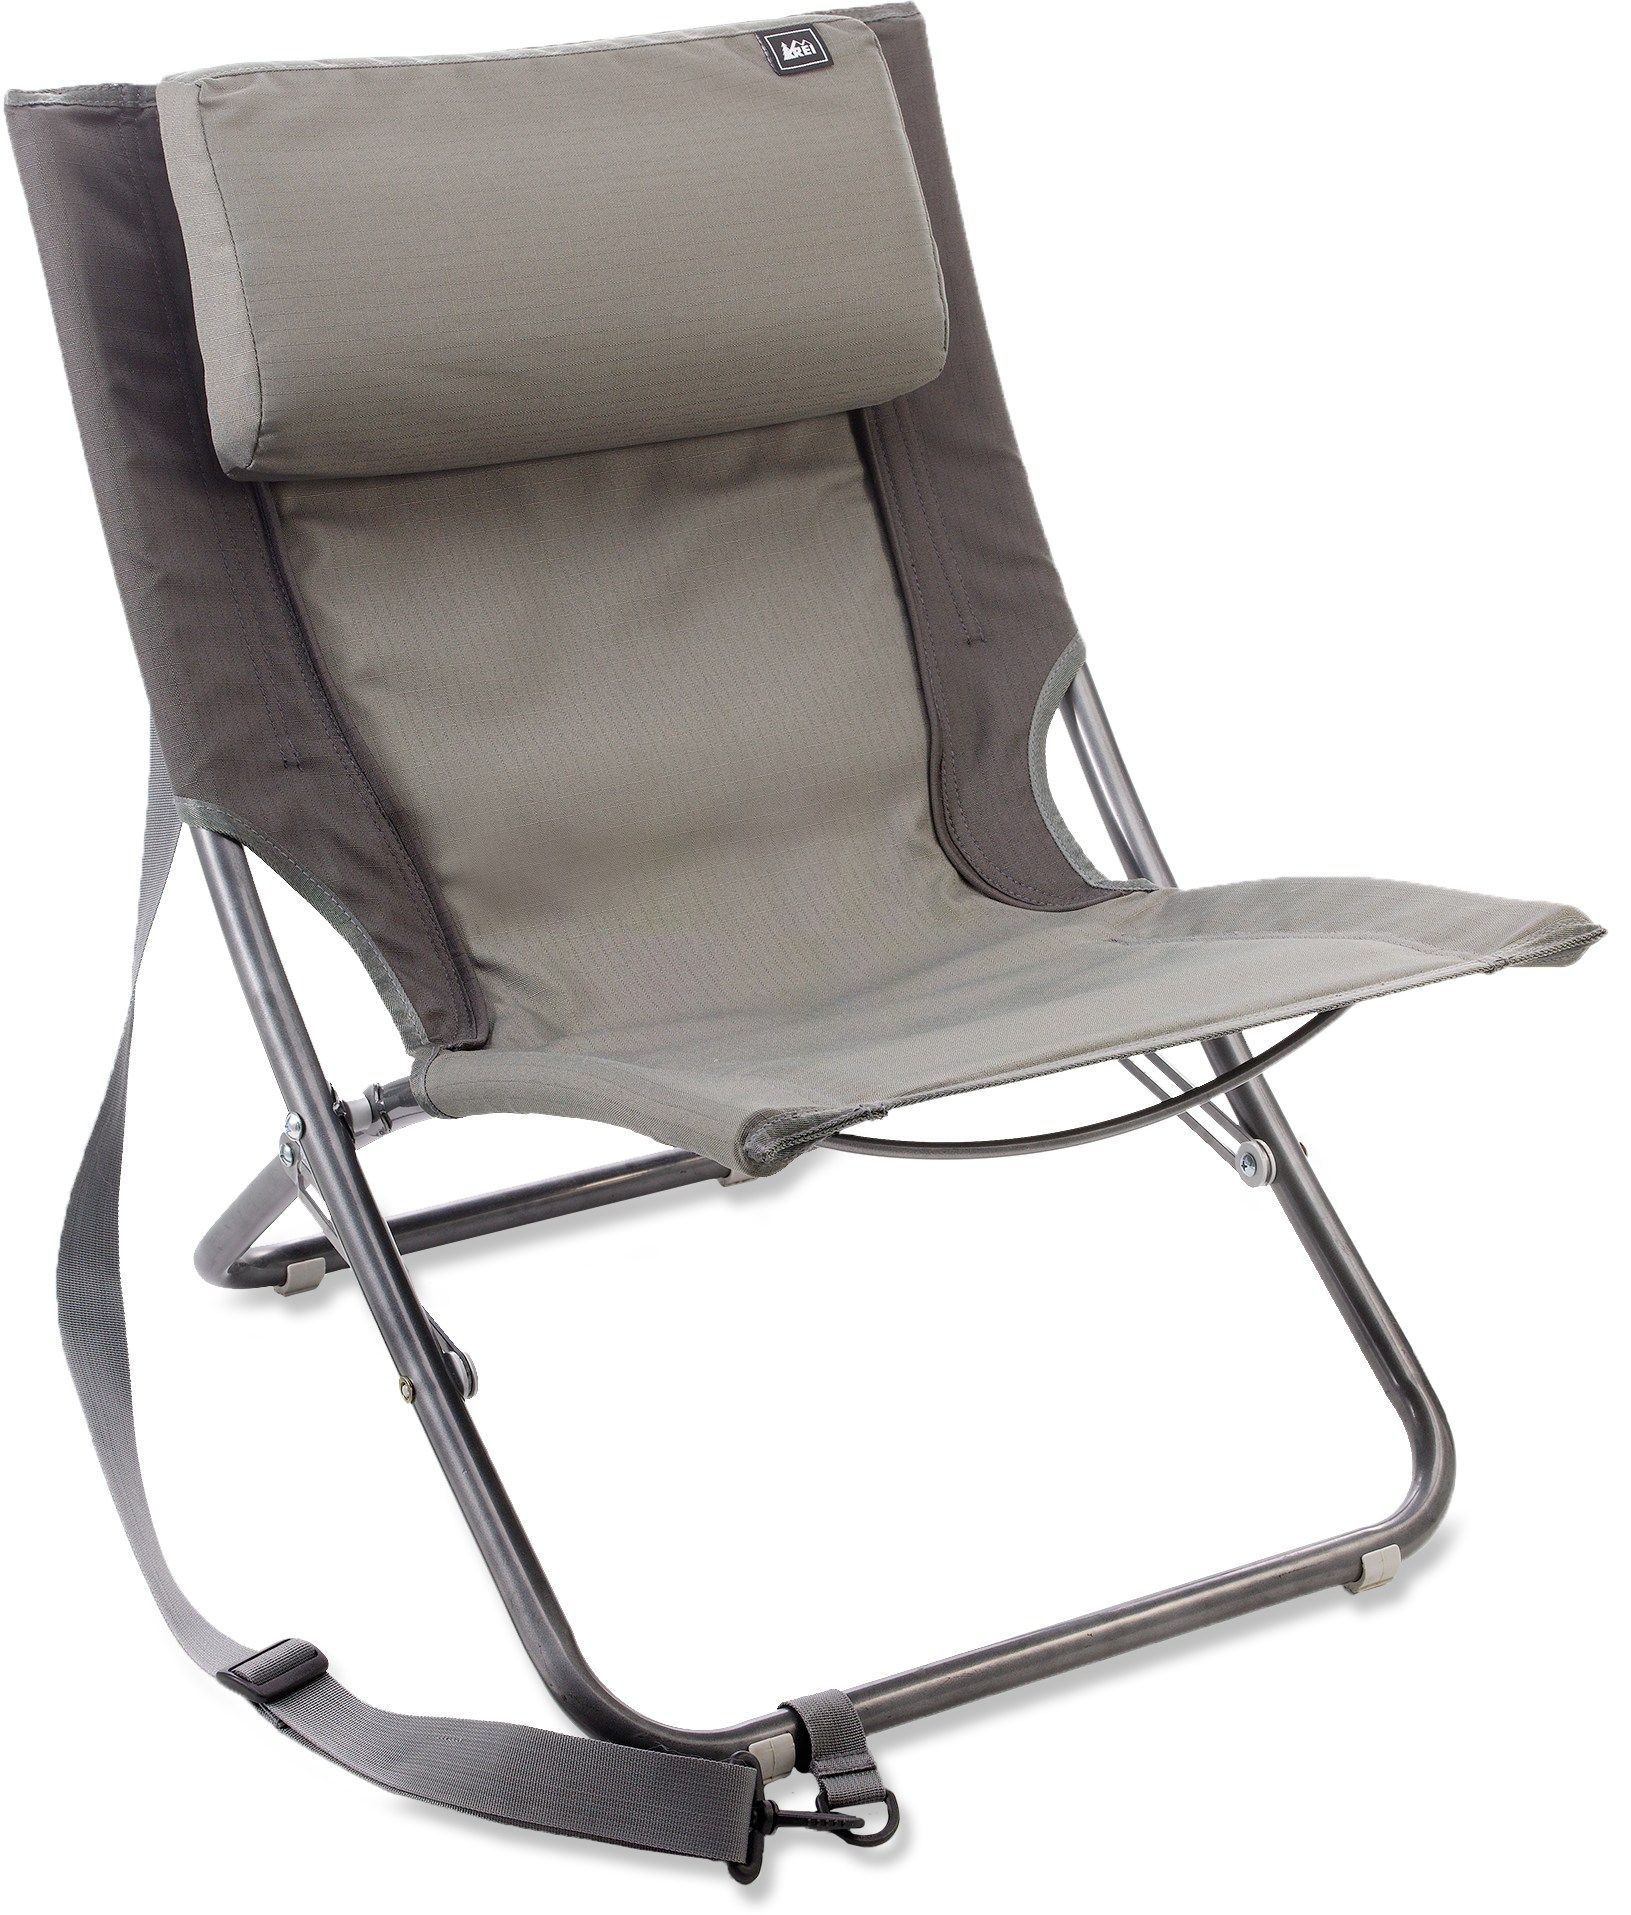 camp chairs rei comfortable bar comfort ltg chair 23 93 34 50 reduced price you save 30 5 39 item 765272